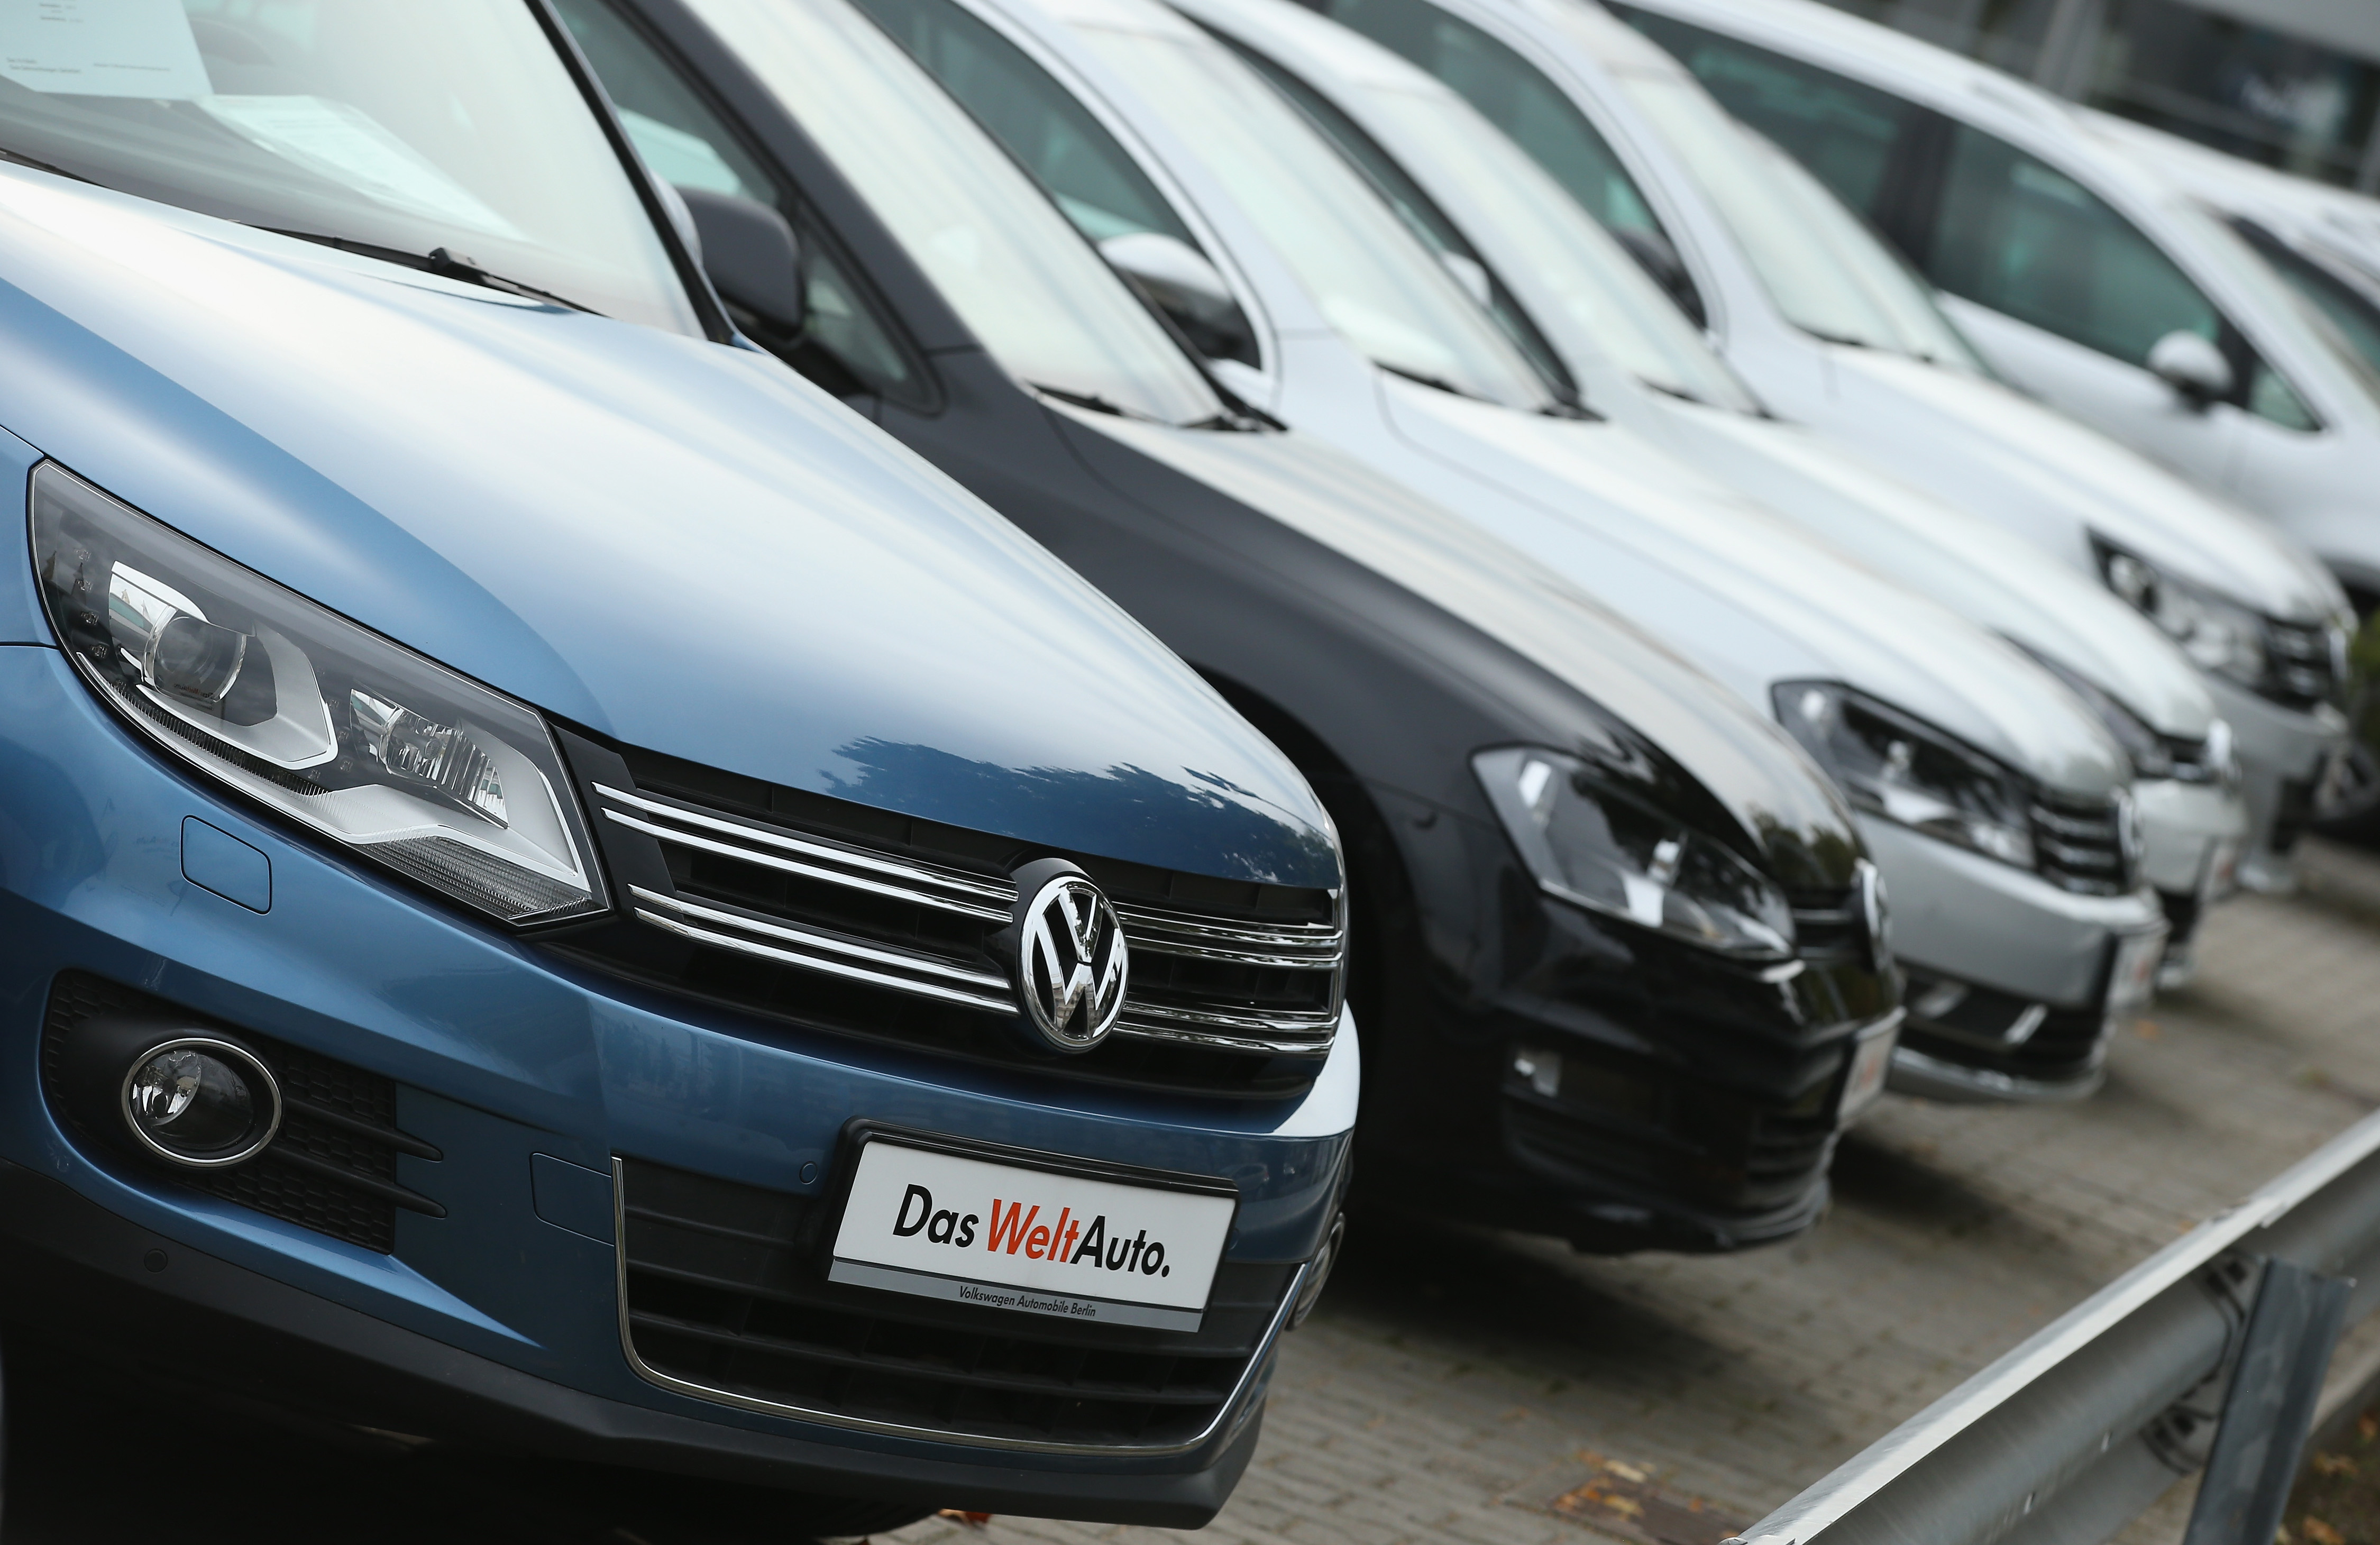 used cars of german carmaker volkswagen stand on display at a volkswagen car dealership